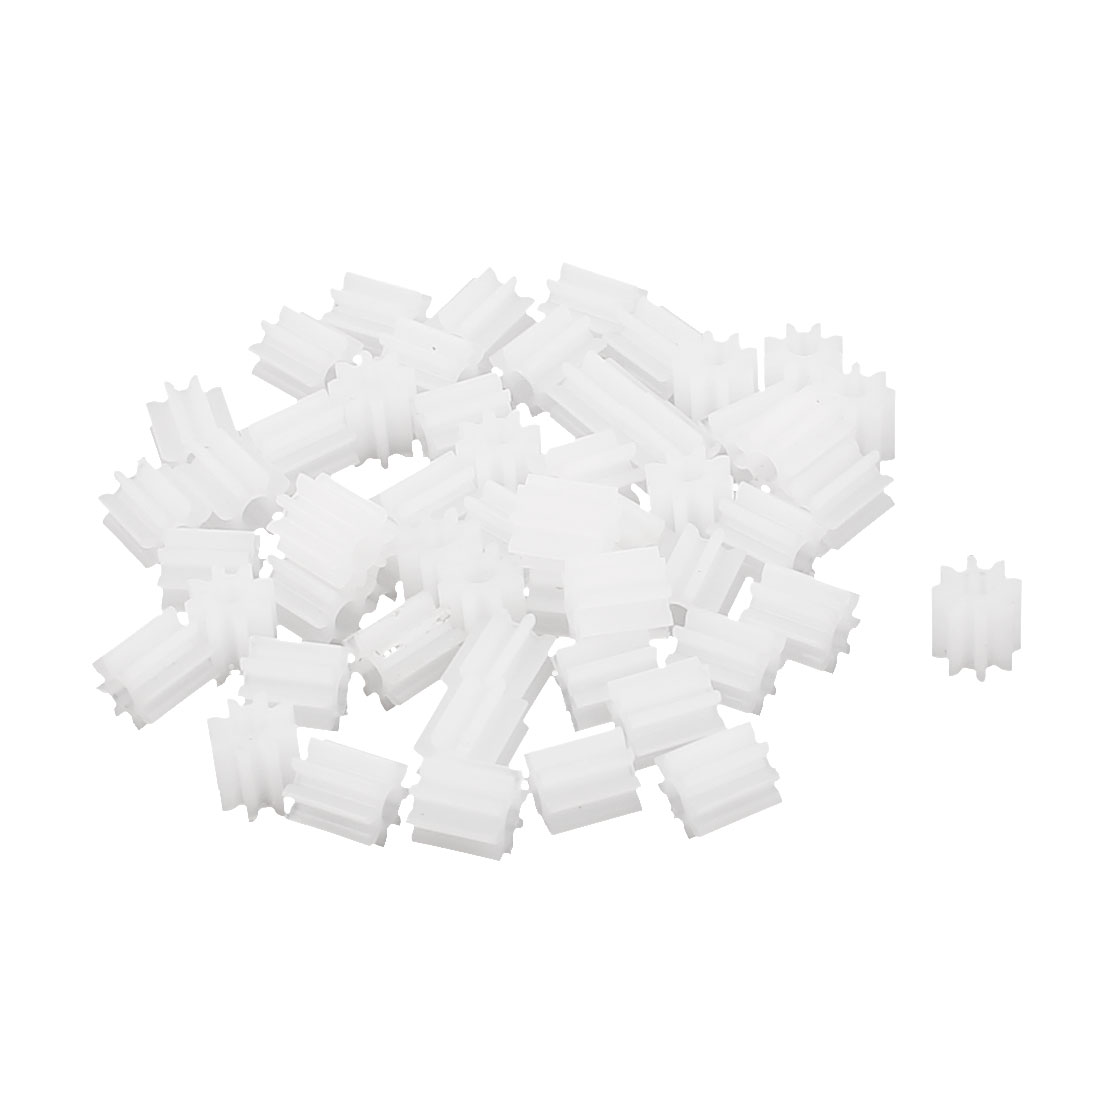 50 Pcs 4.5mmx2mm 8 Teeth Plastic Thick Motor Spindle Spur Gear for DIY Robbot